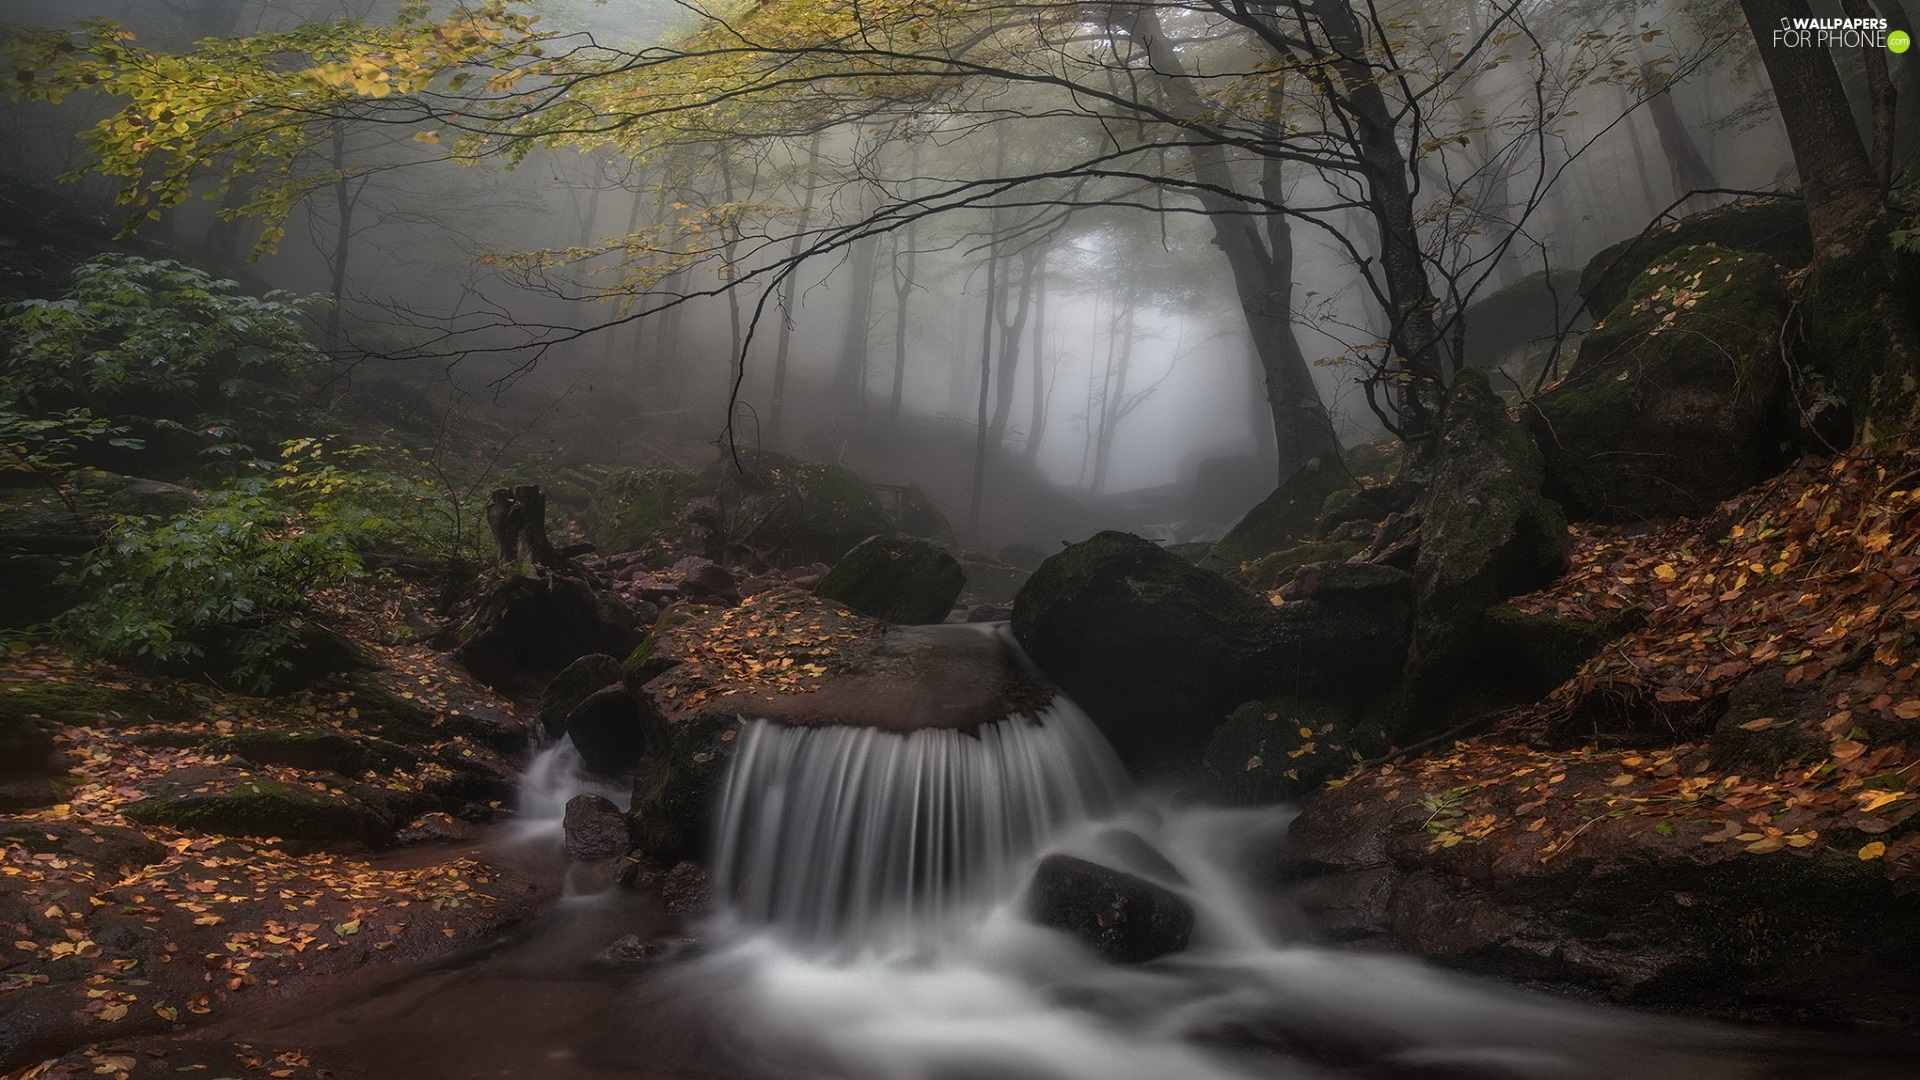 Fog, trees, River, viewes, Stones, forest, autumn, Leaf